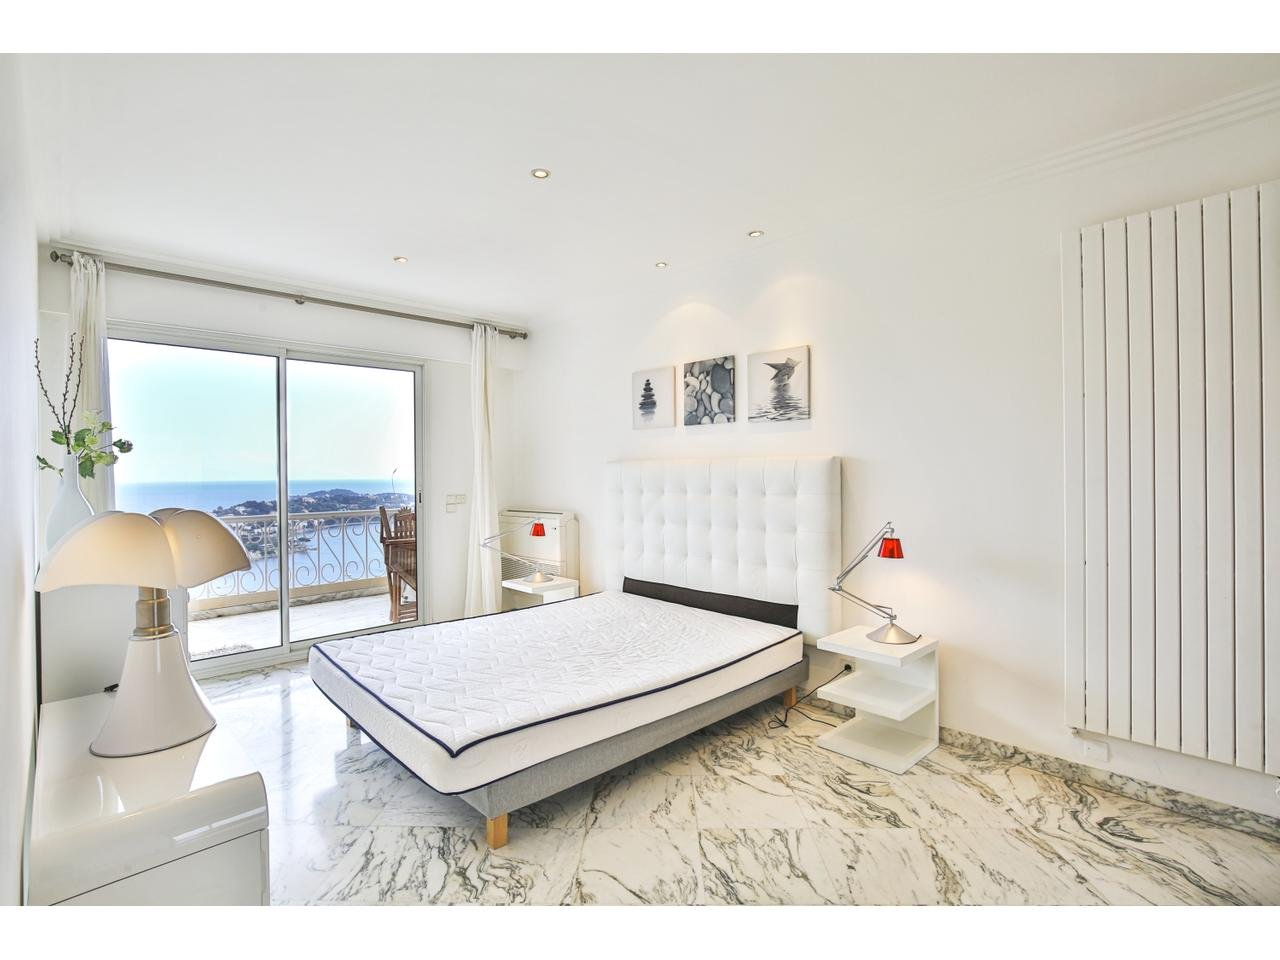 Apartment with fabulous views over Villefranche-sur-mer